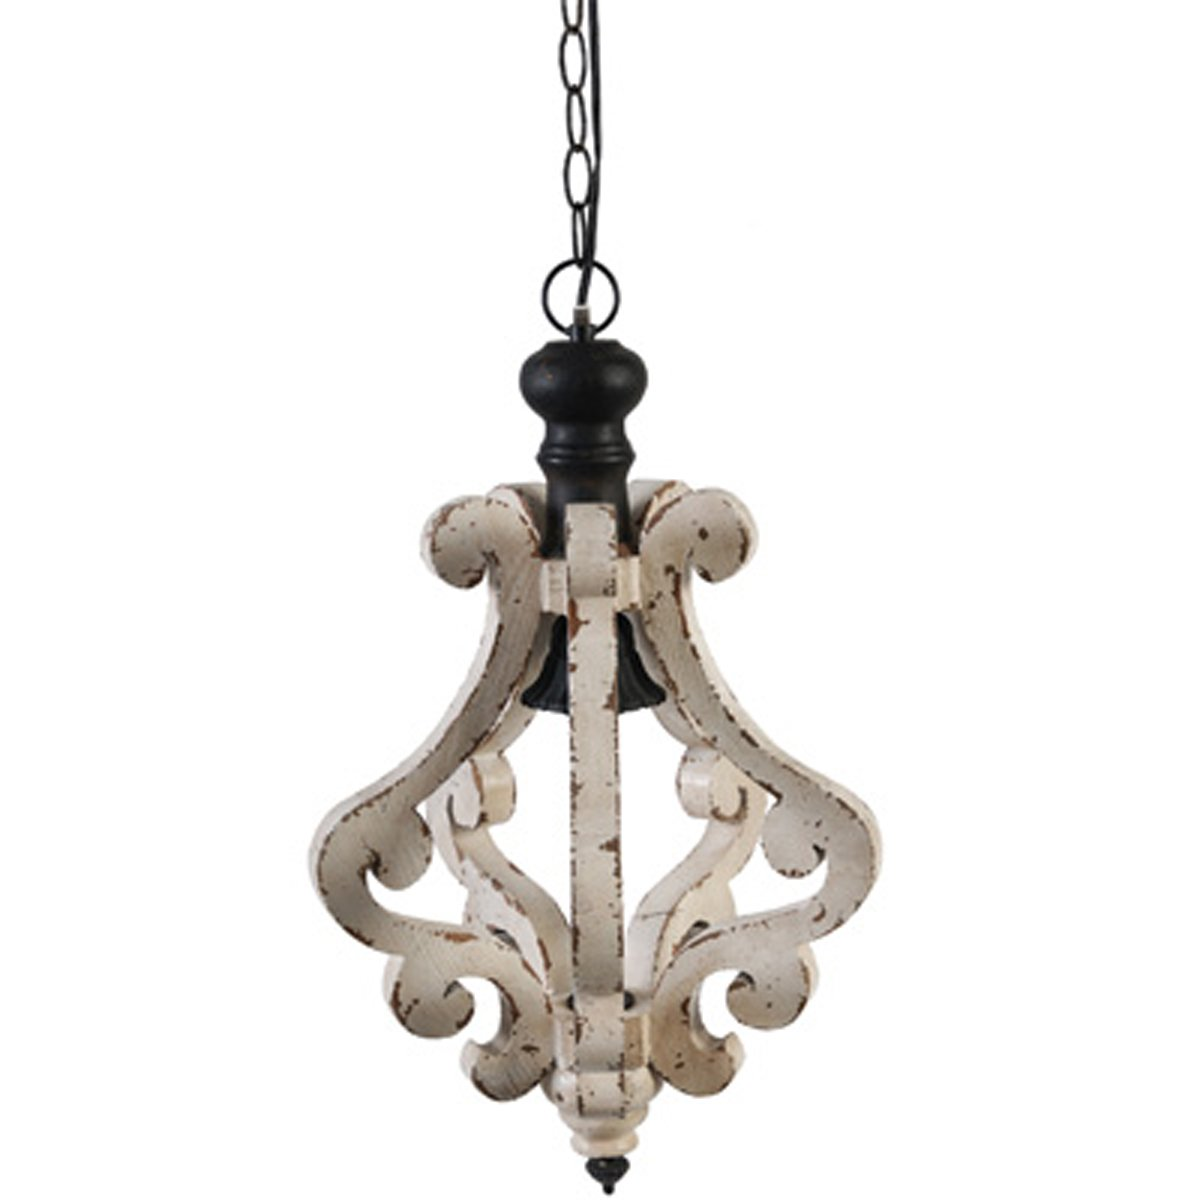 A&B Home Harper 1-Light Wood & Metal Chandelier, 12.5'' x 12.5'' x 21''